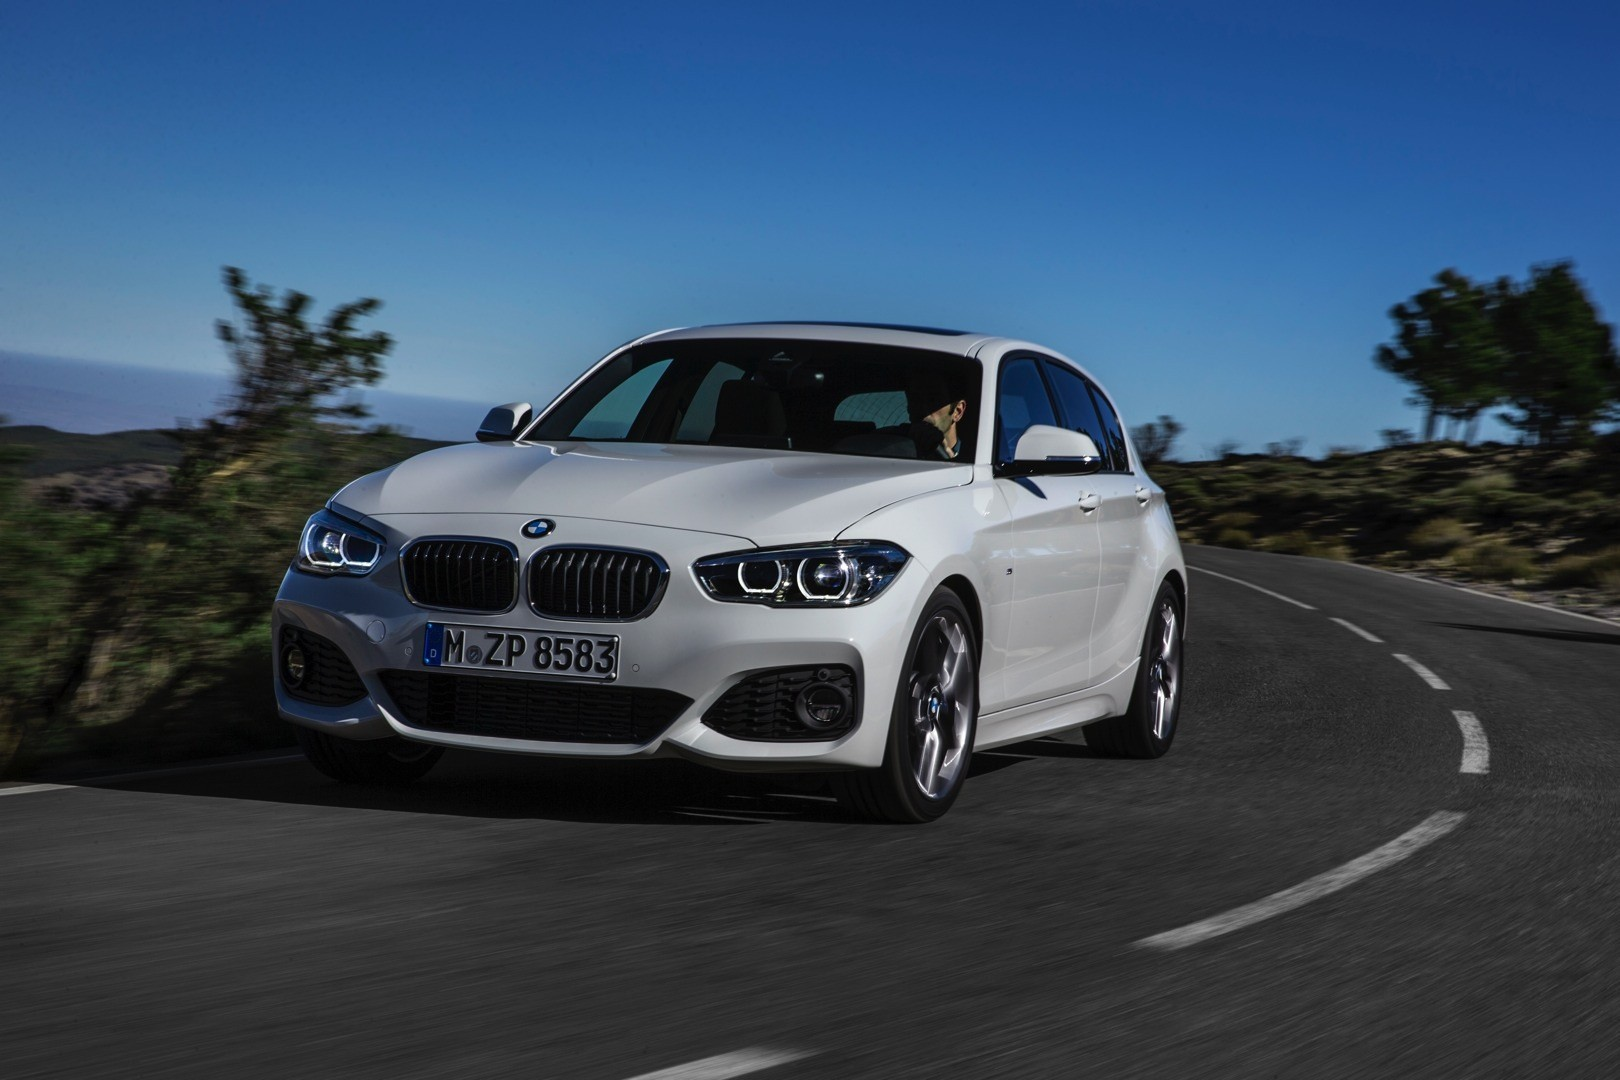 2015 bmw 1 series facelift revealed with new design and more standard kit autoevolution. Black Bedroom Furniture Sets. Home Design Ideas